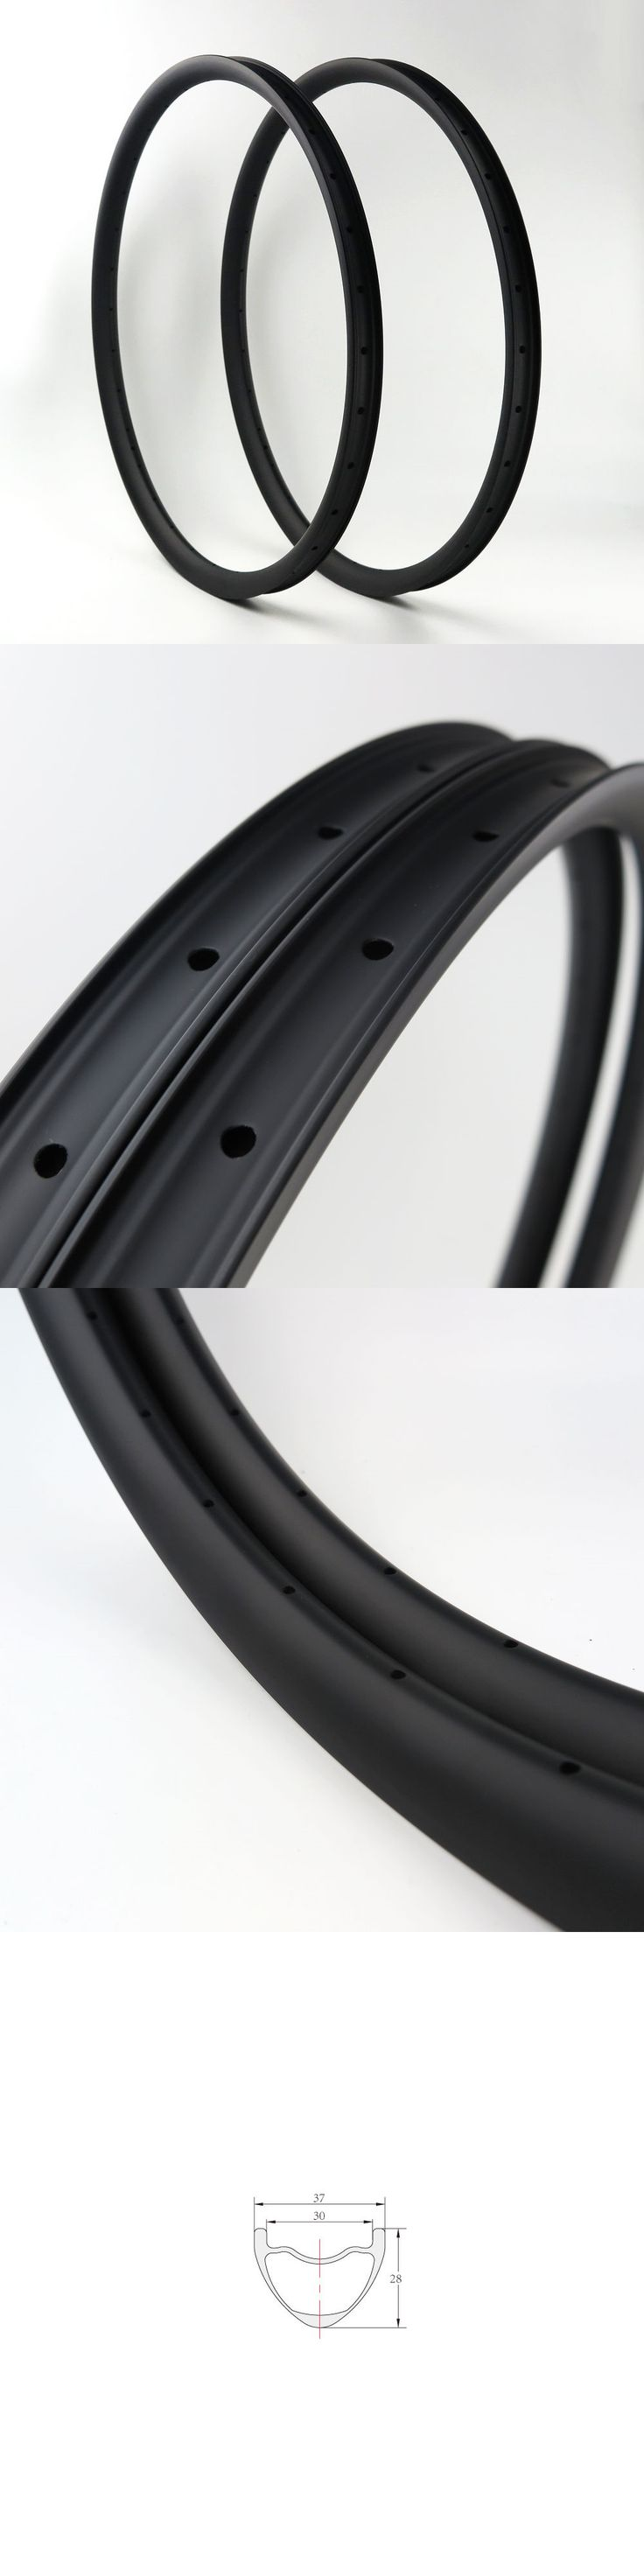 Rims 177821: Promotion Stock Nextie 37Mm Carbon 27.5 Mtb Clincher Bicycle Rim Tubeless 1Pair -> BUY IT NOW ONLY: $279 on eBay!